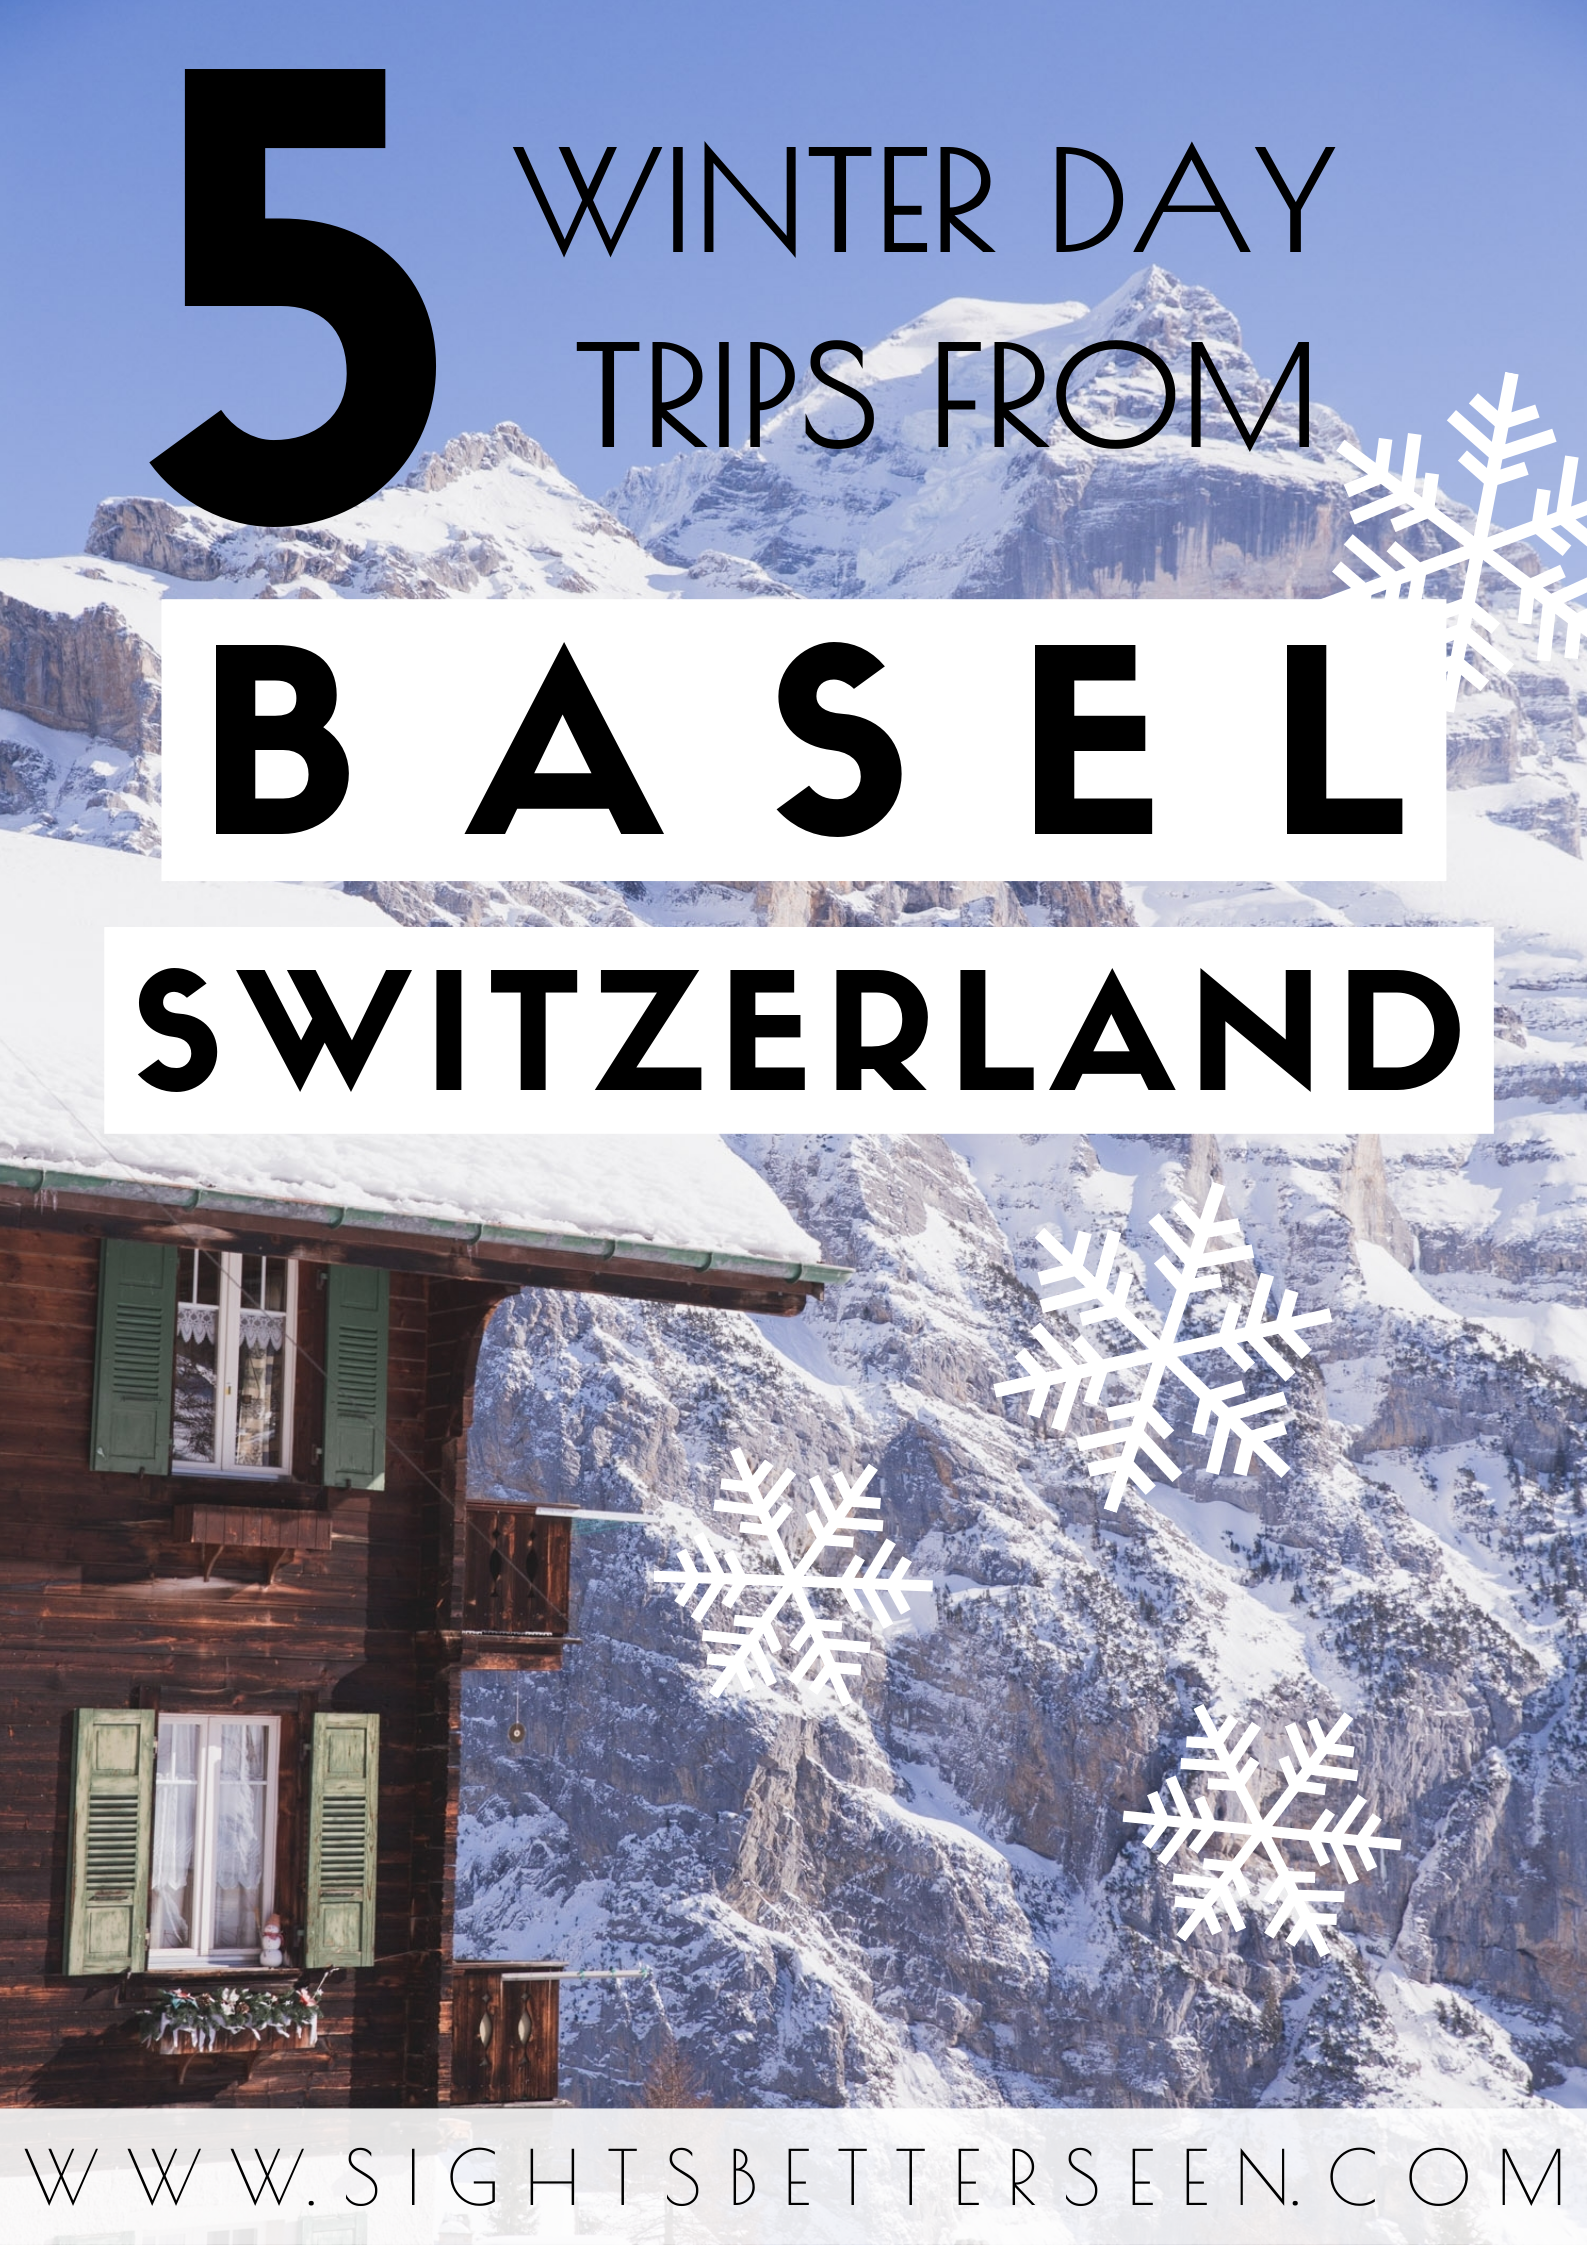 The best day trips from Basel, Switzerland to take in the winter! Winter in Switzerland is beautiful and there are many amazing destinations, like the Swiss Alps, and many towns and cities.